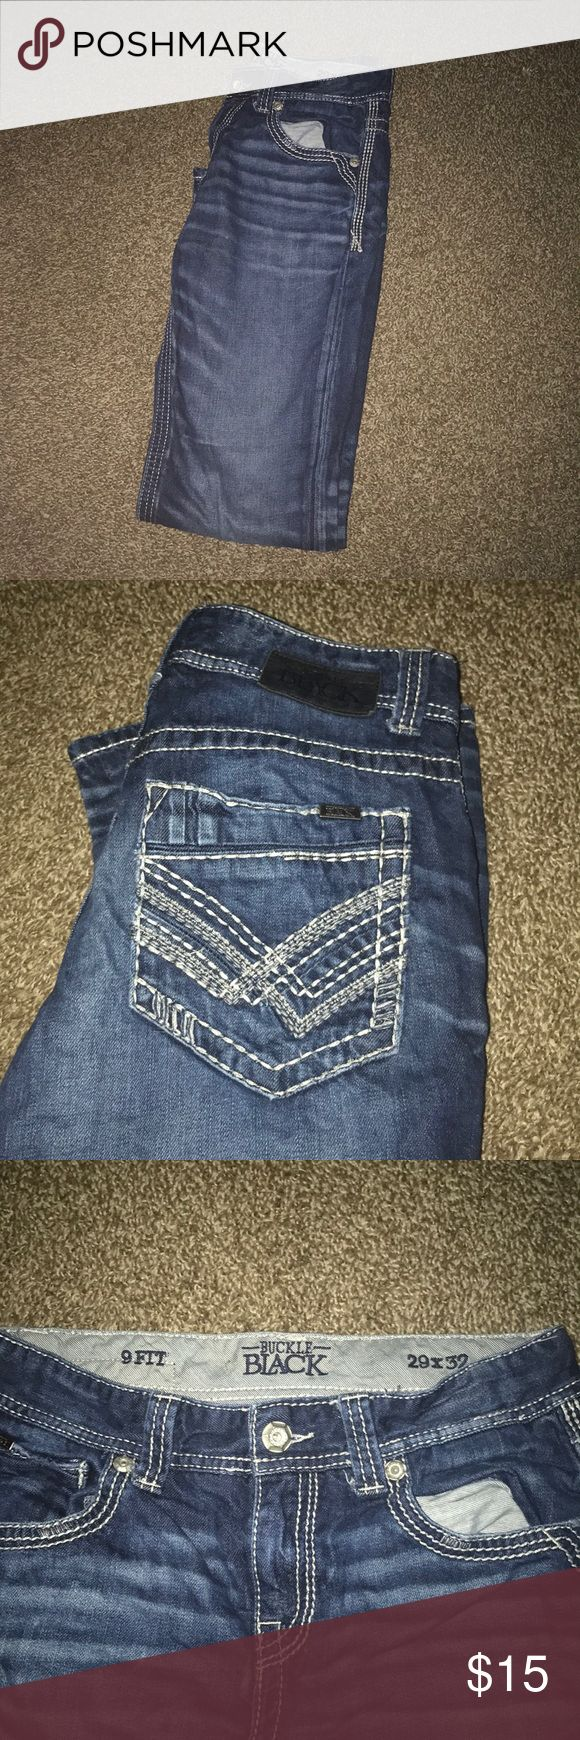 Buckle jeans for men. 29x32 Barely worn blue jeans from buckle. These are in really good condition and have no wear or tear. Stitching is nice and material is amazing. Buckle Jeans Bootcut